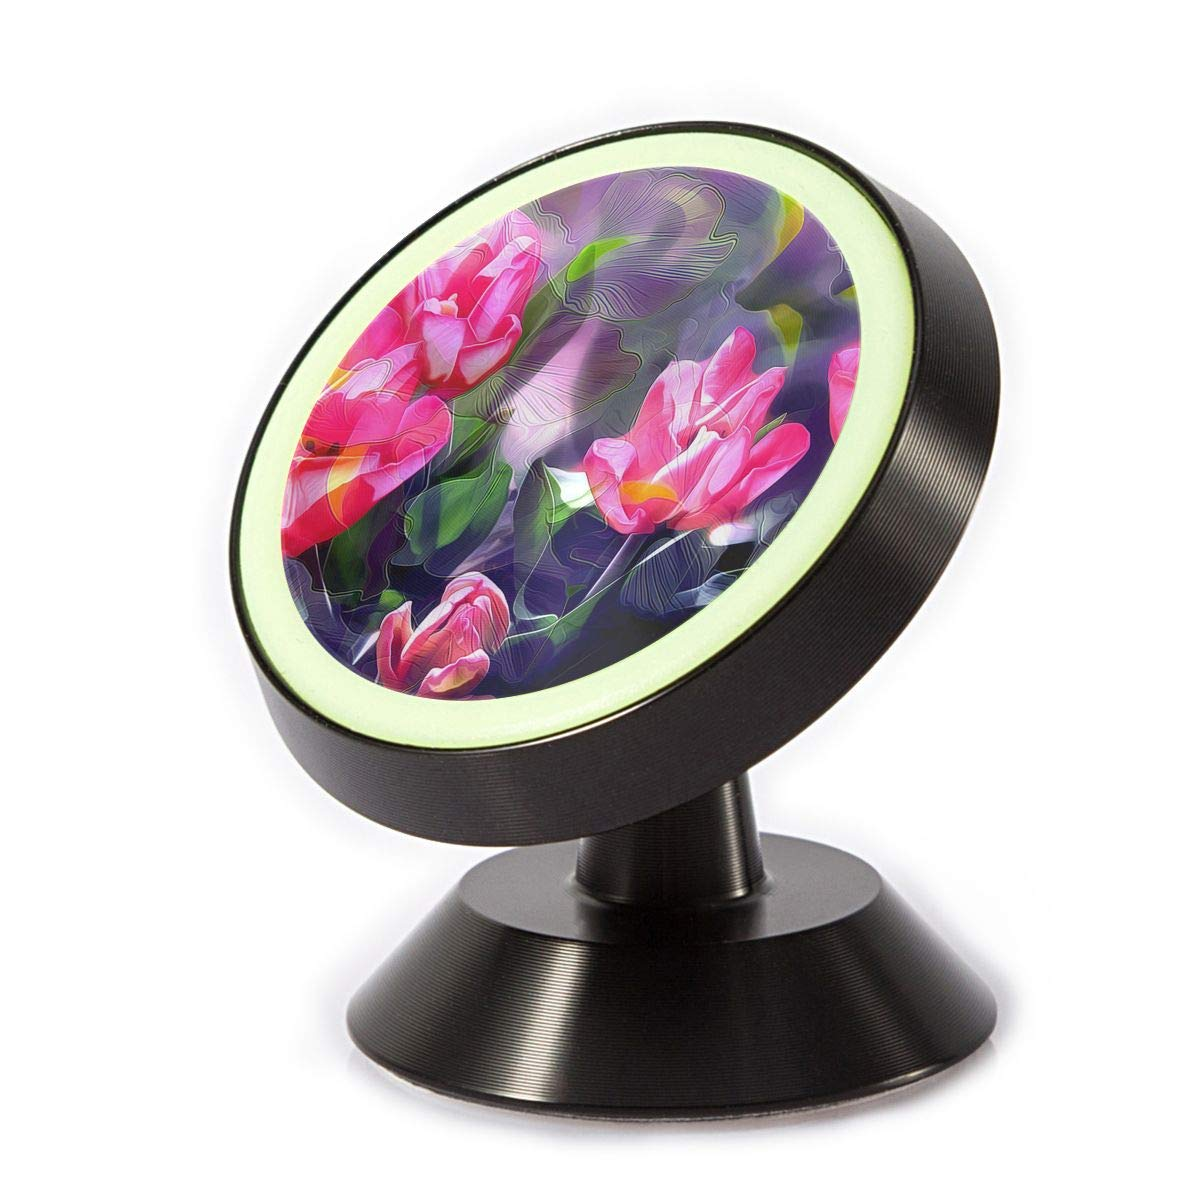 Magnetic Car Phone Holder Flower Picture 360 Degree Rotating Stand Grip Mount for iPhone X / 8/8 Plus 7/7 Plus / 6s / 6 / Galaxy S8 / S7